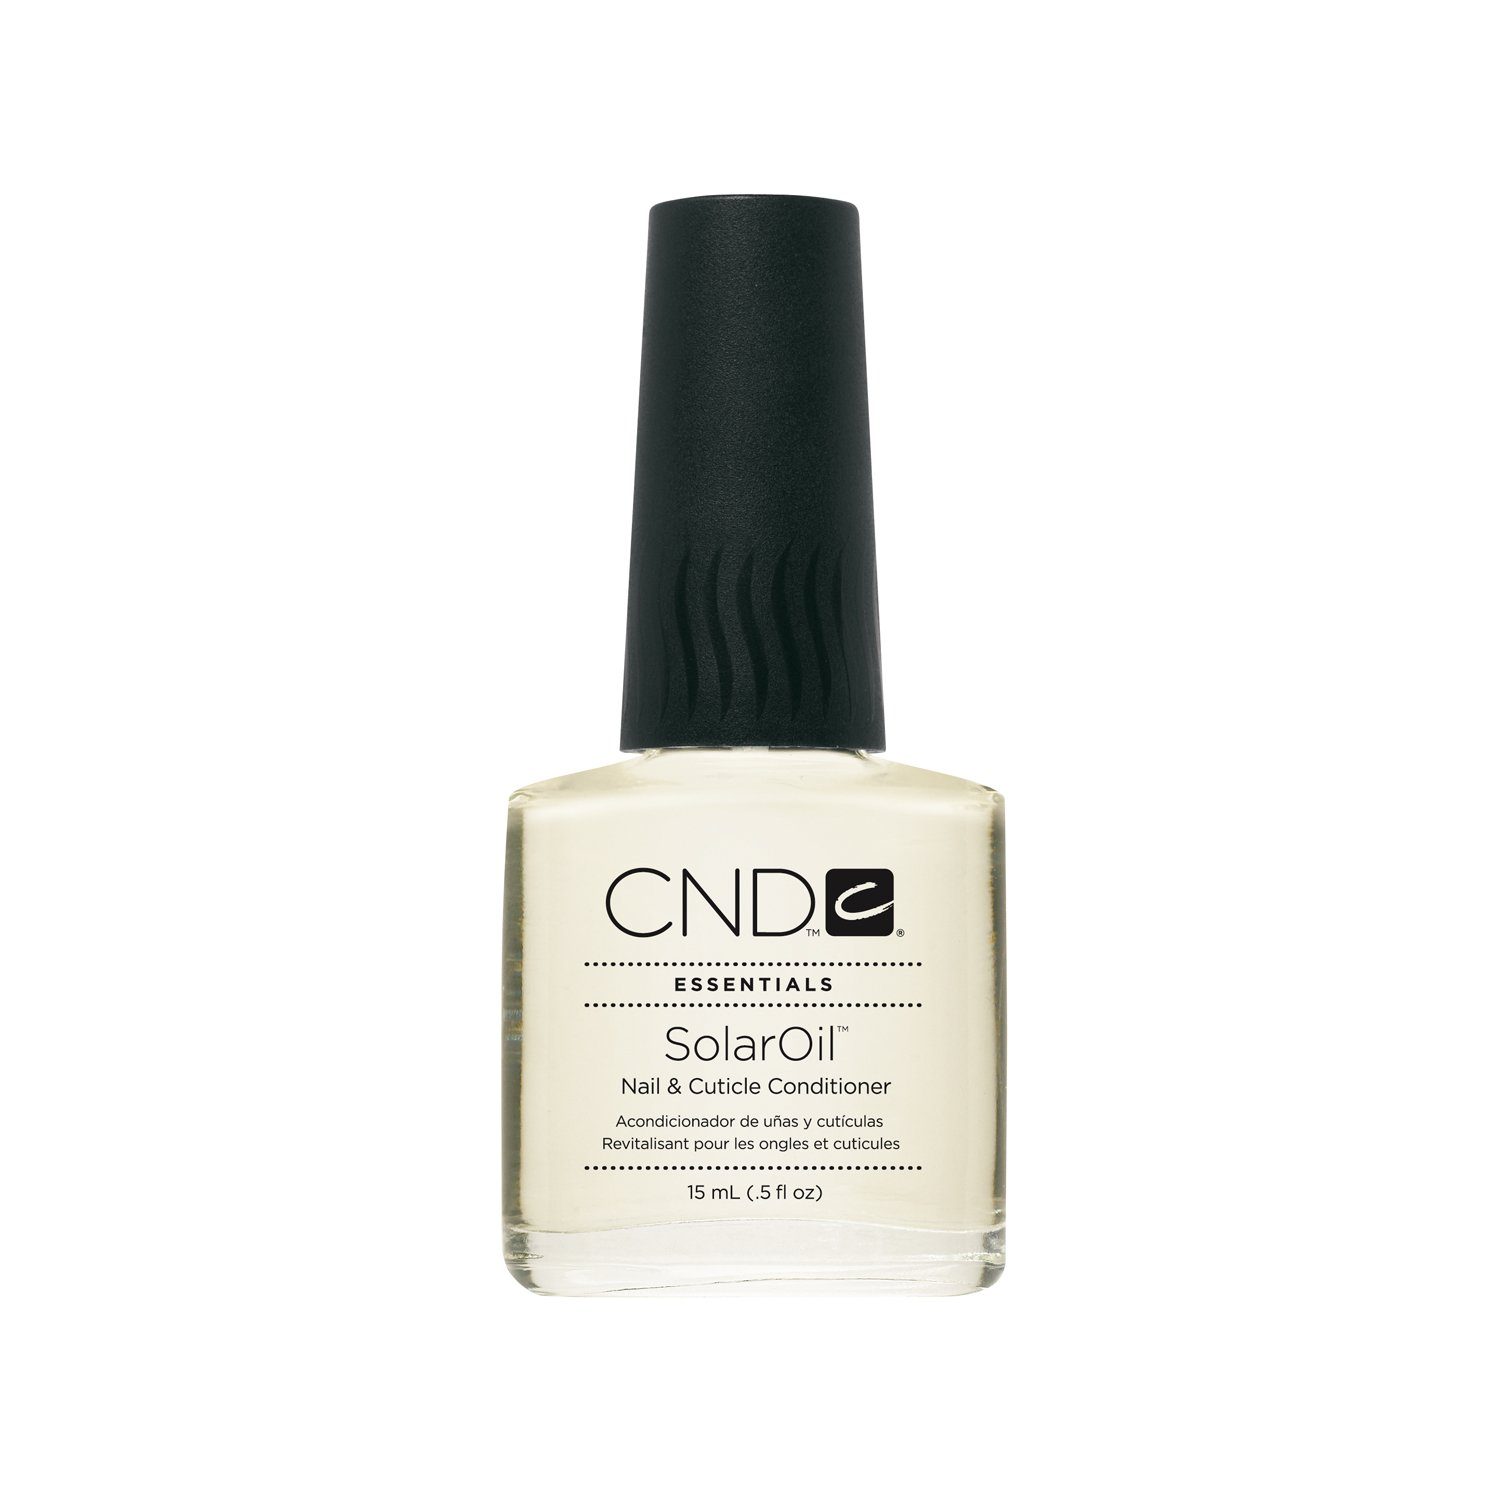 Cnd creative nail design cuticle solar oil